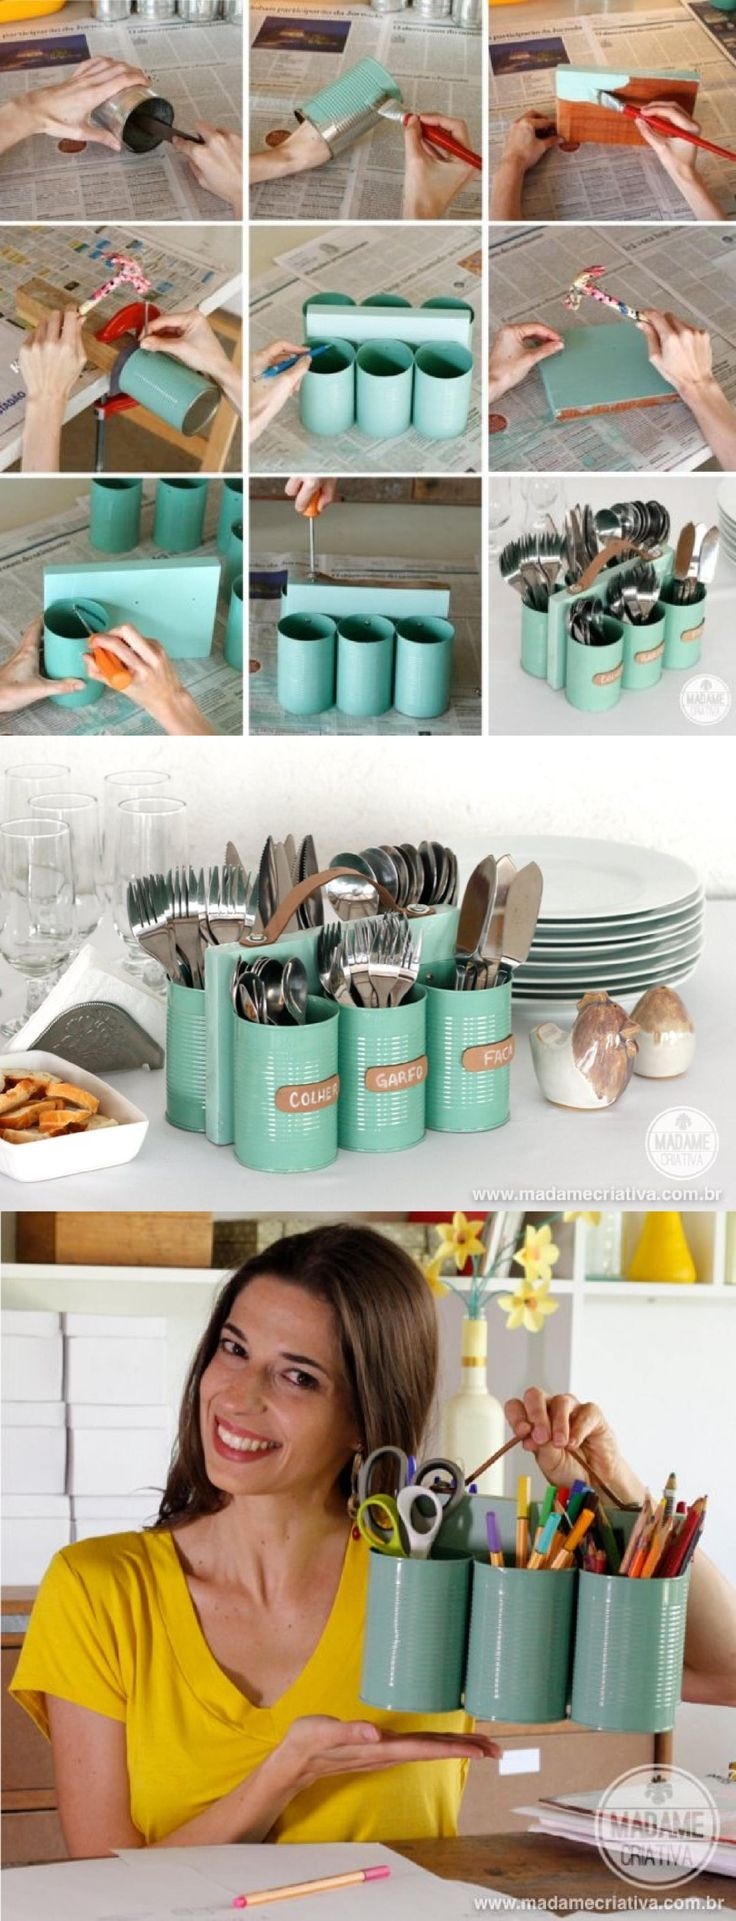 #DIY - craft supply caddy from tin cans - Fantastic for BBQ's/Outdoor Parties etc